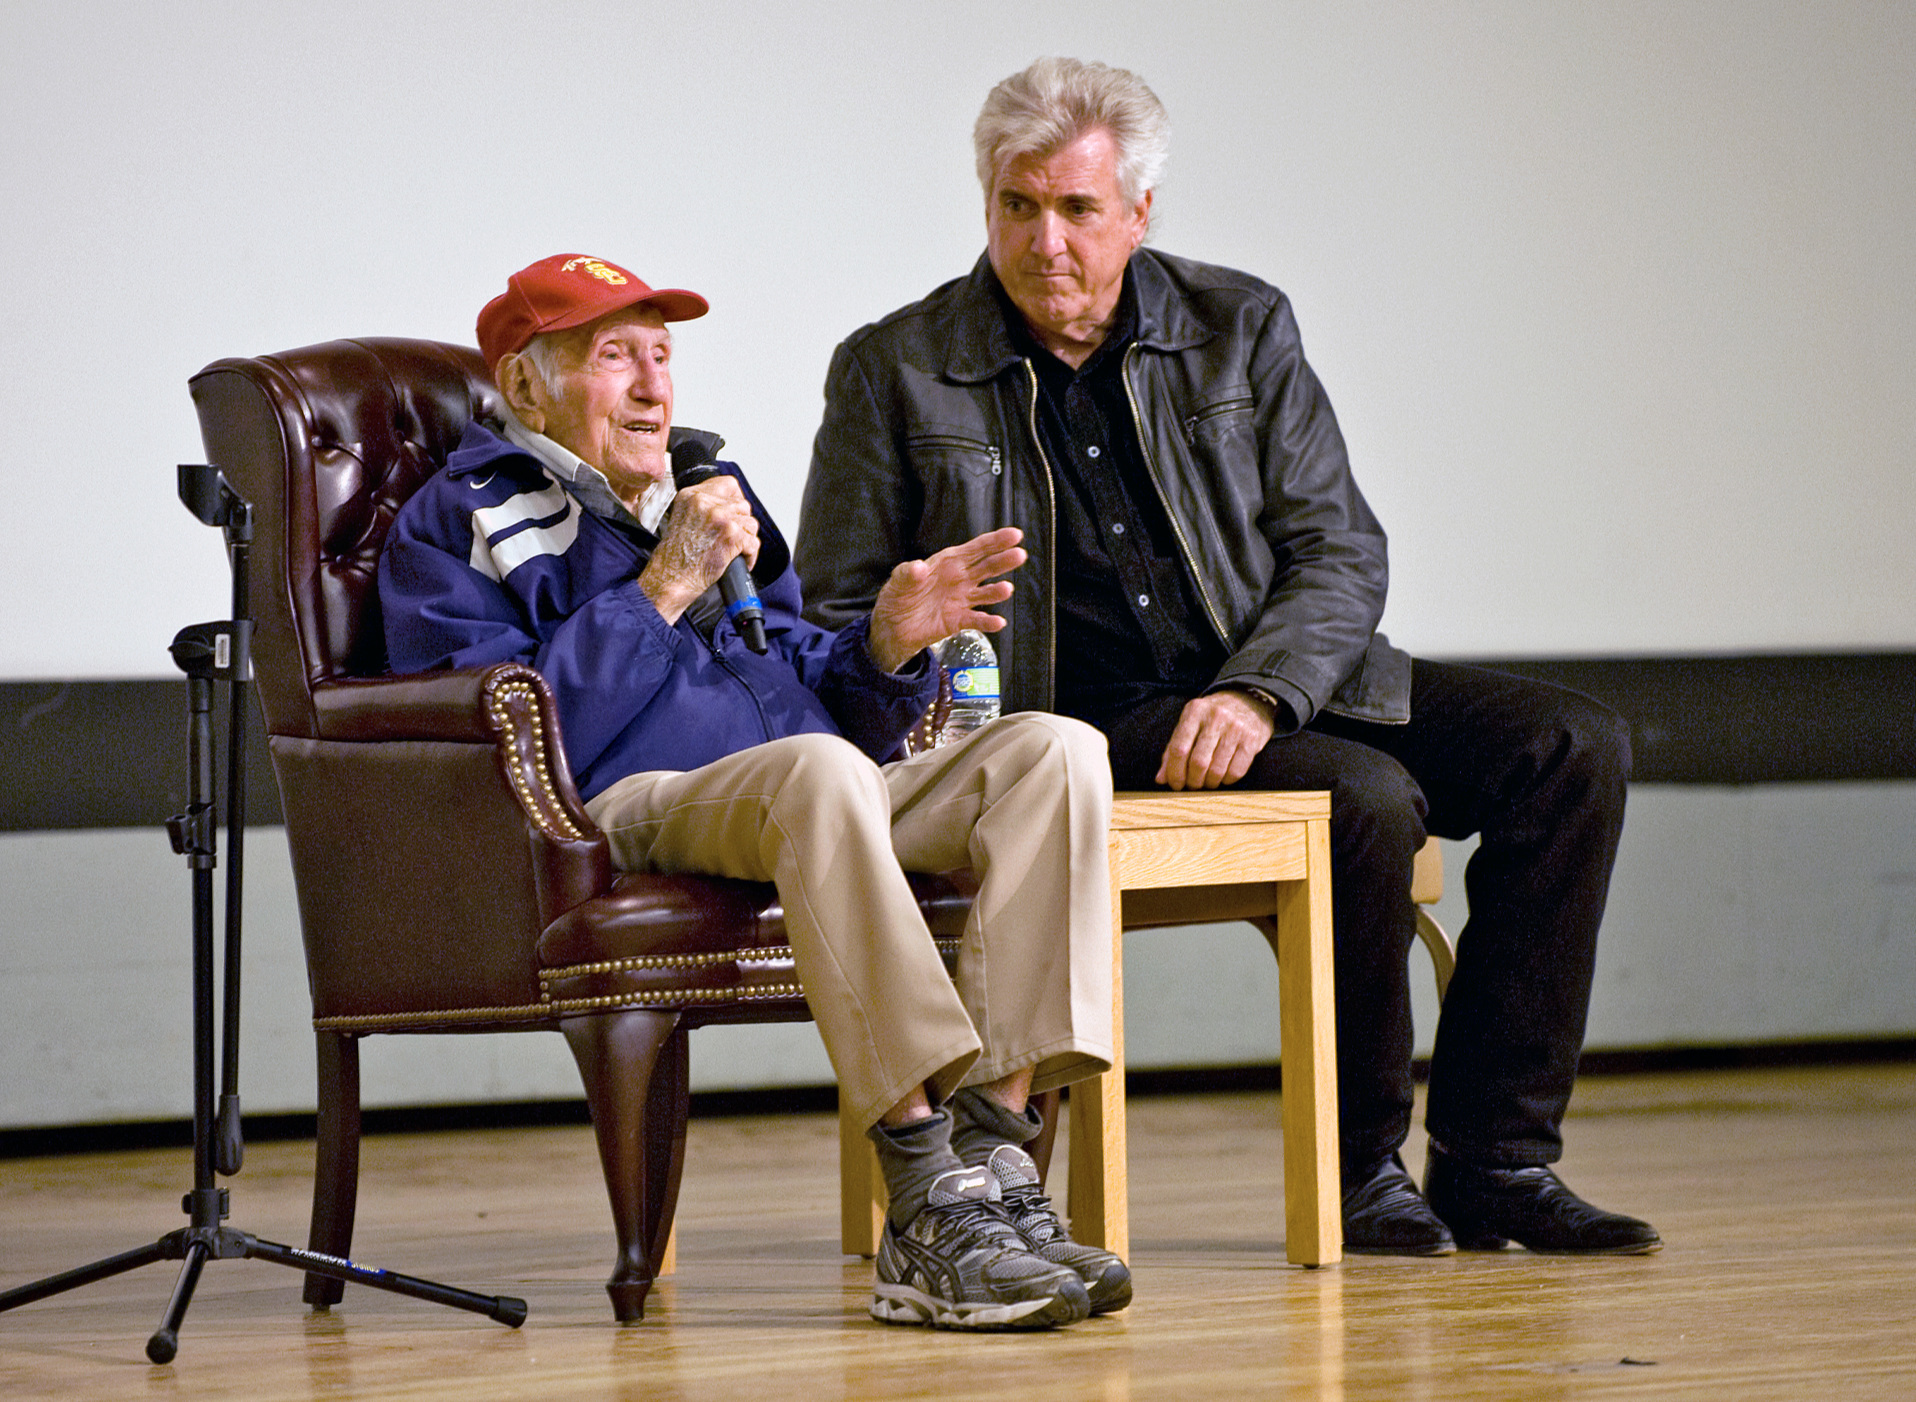 Louis Zamperini shares the remarkable story of his life at age 97.